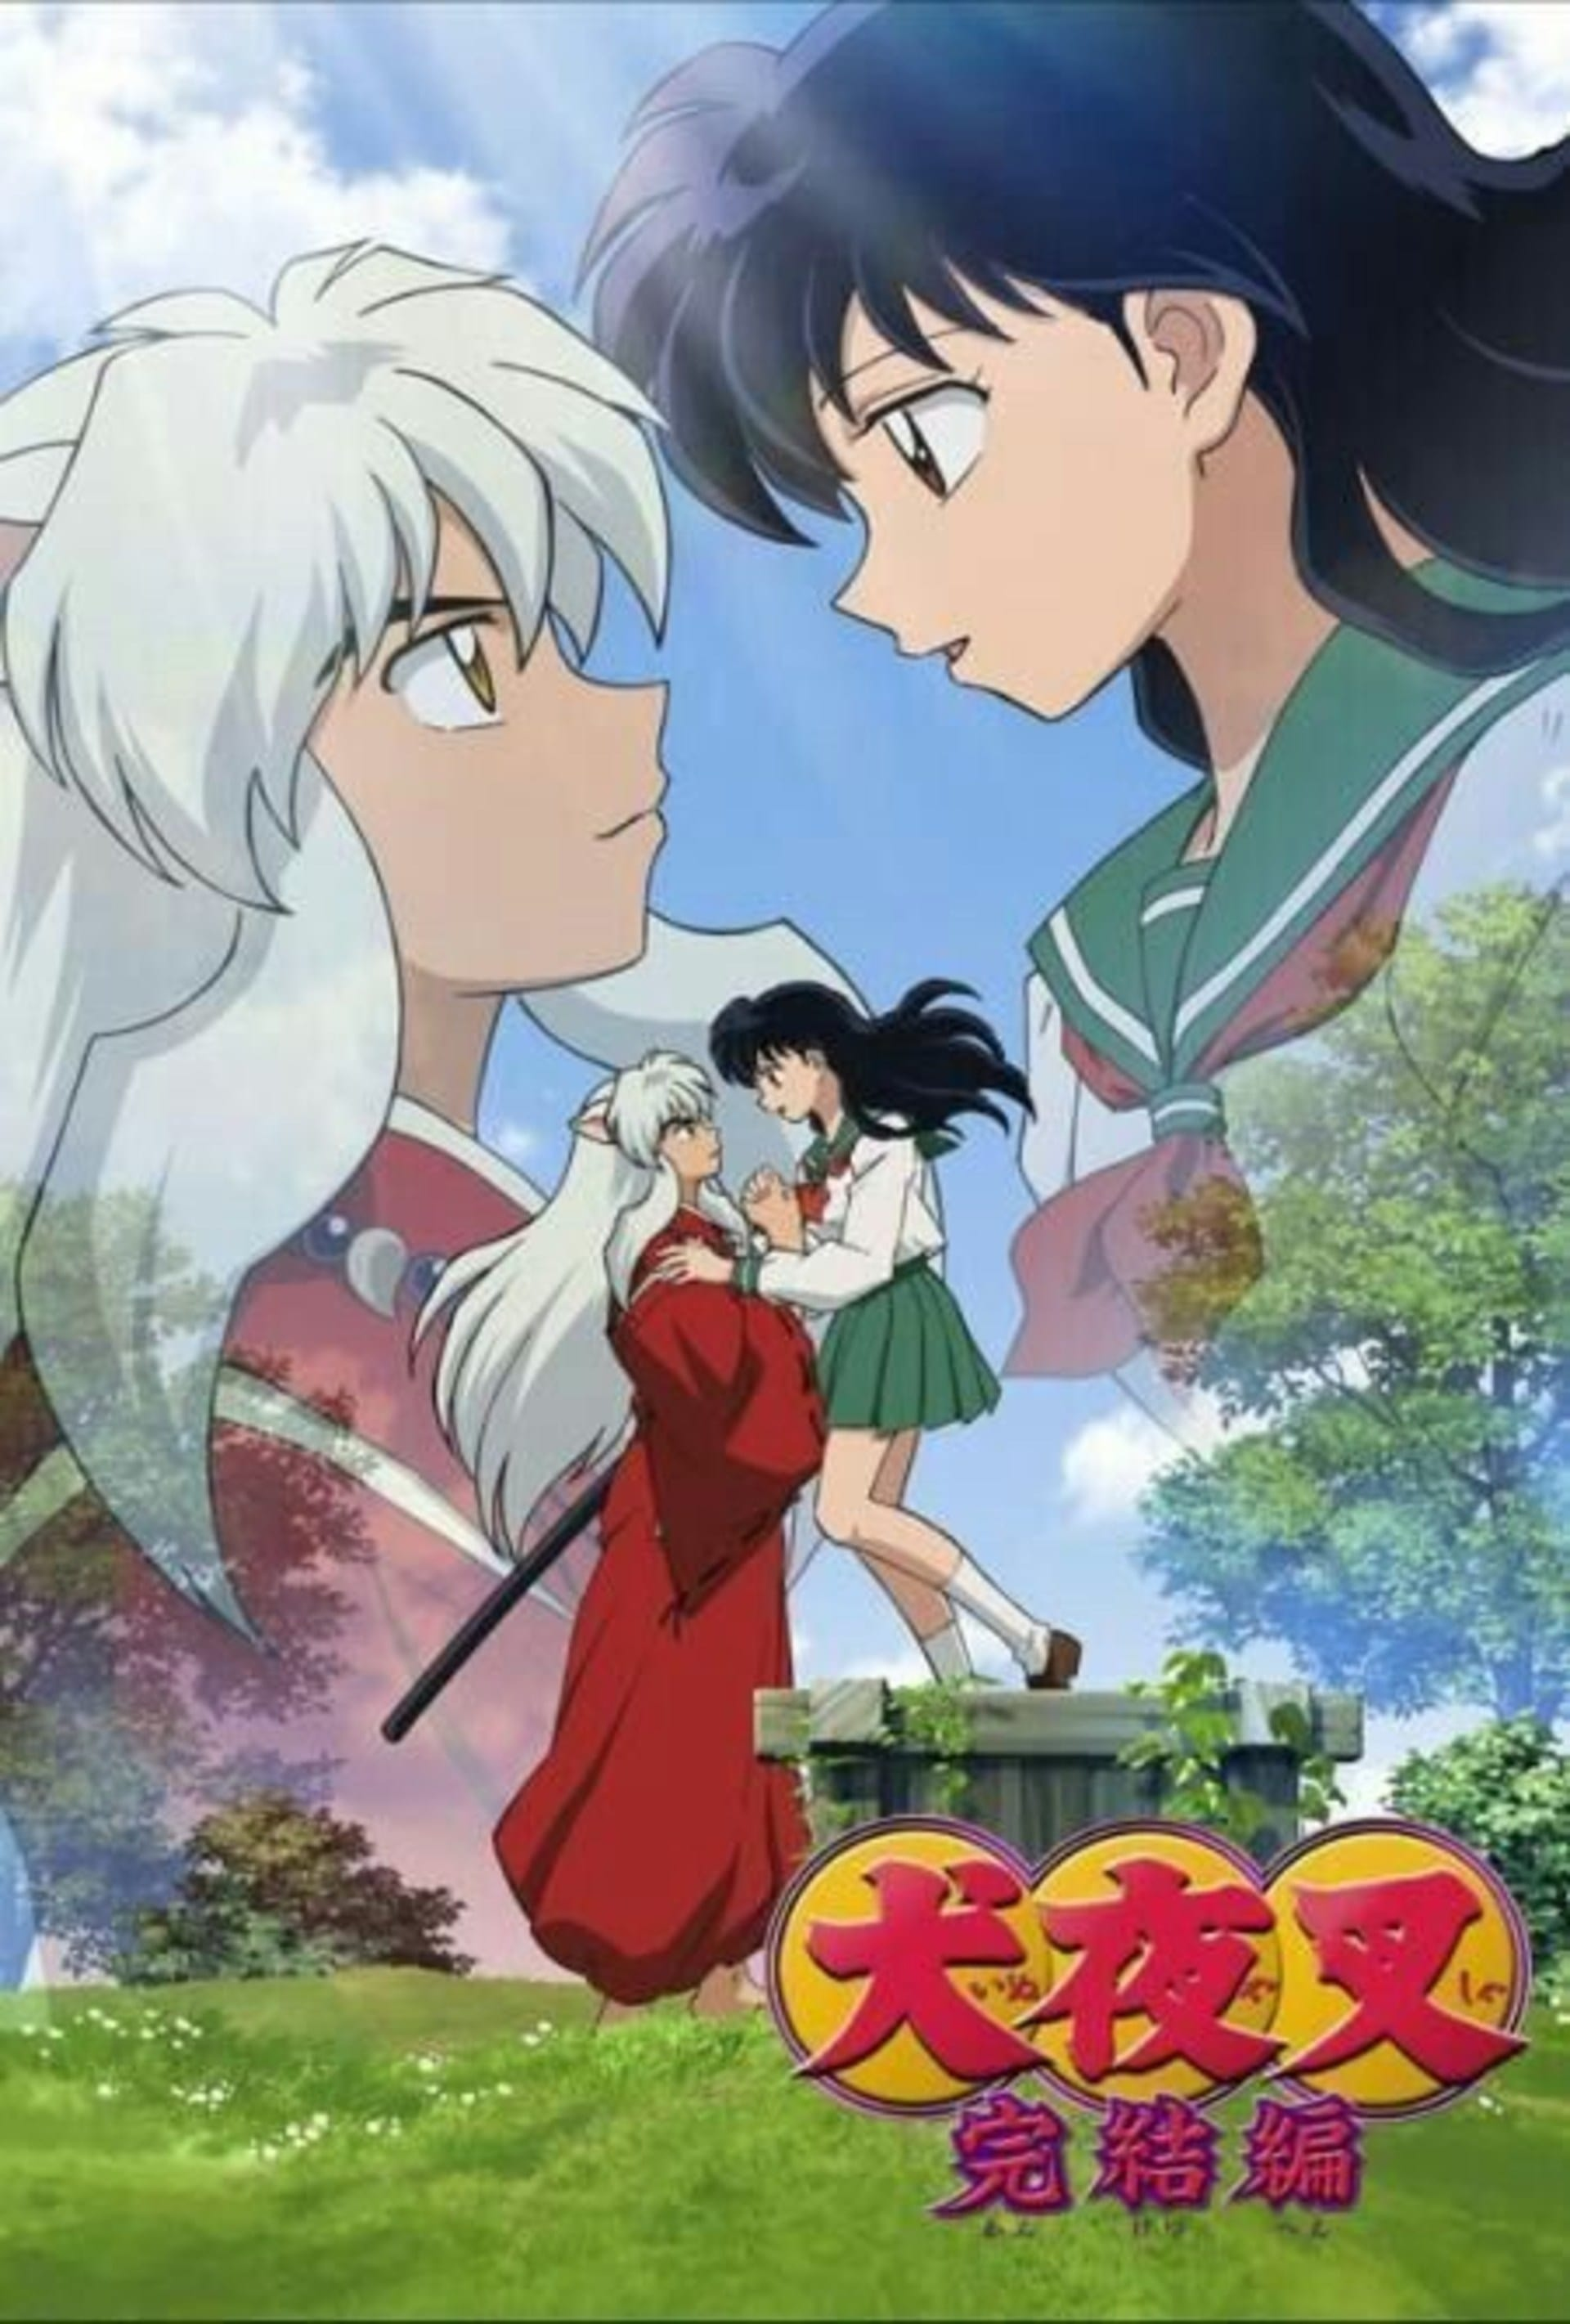 InuYasha: The Final Act (2009)